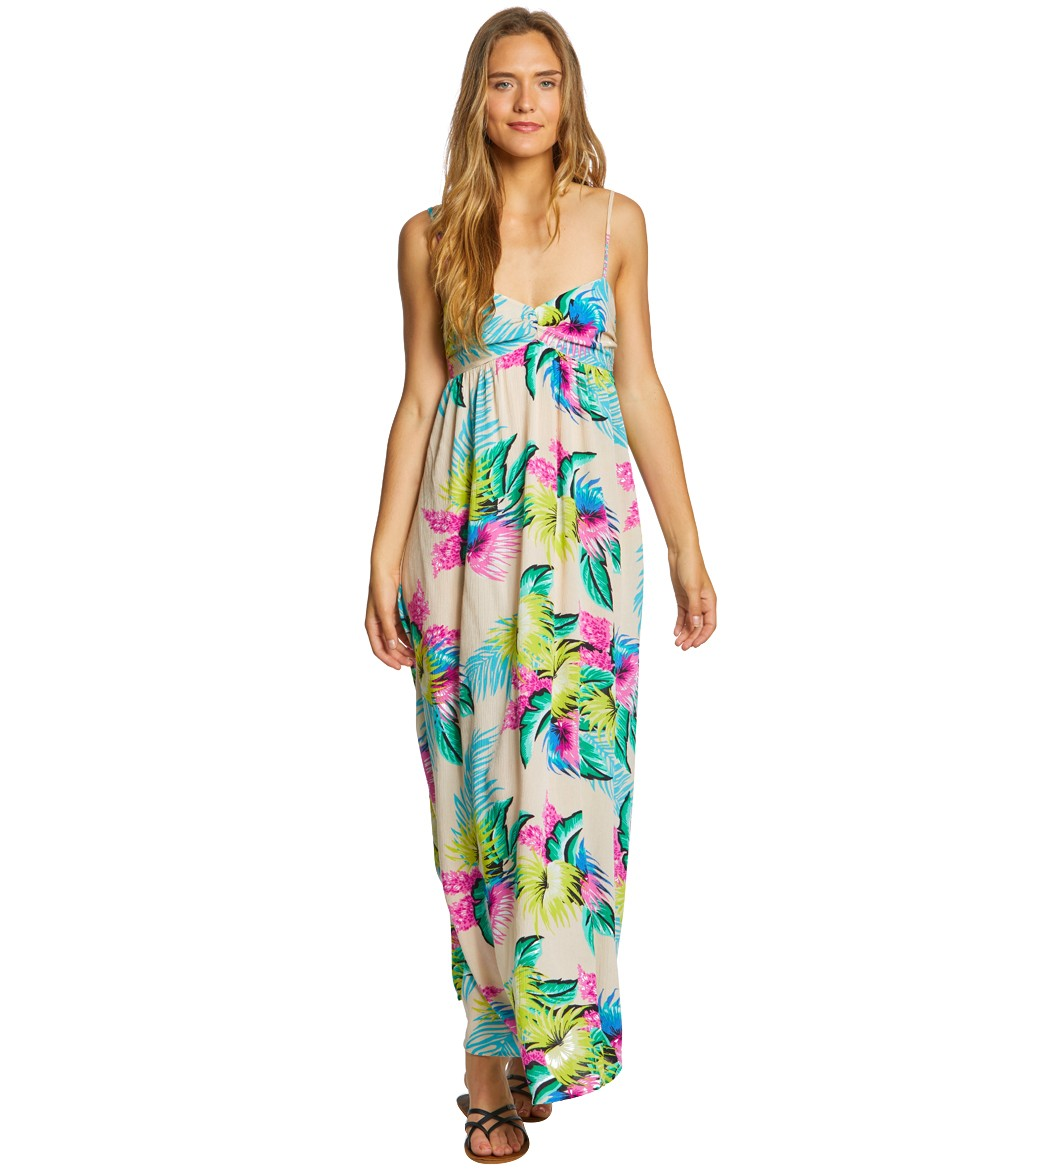 43452447af8aa Rip Curl Women s Ophelia Maxi Dress at SwimOutlet.com - Free Shipping